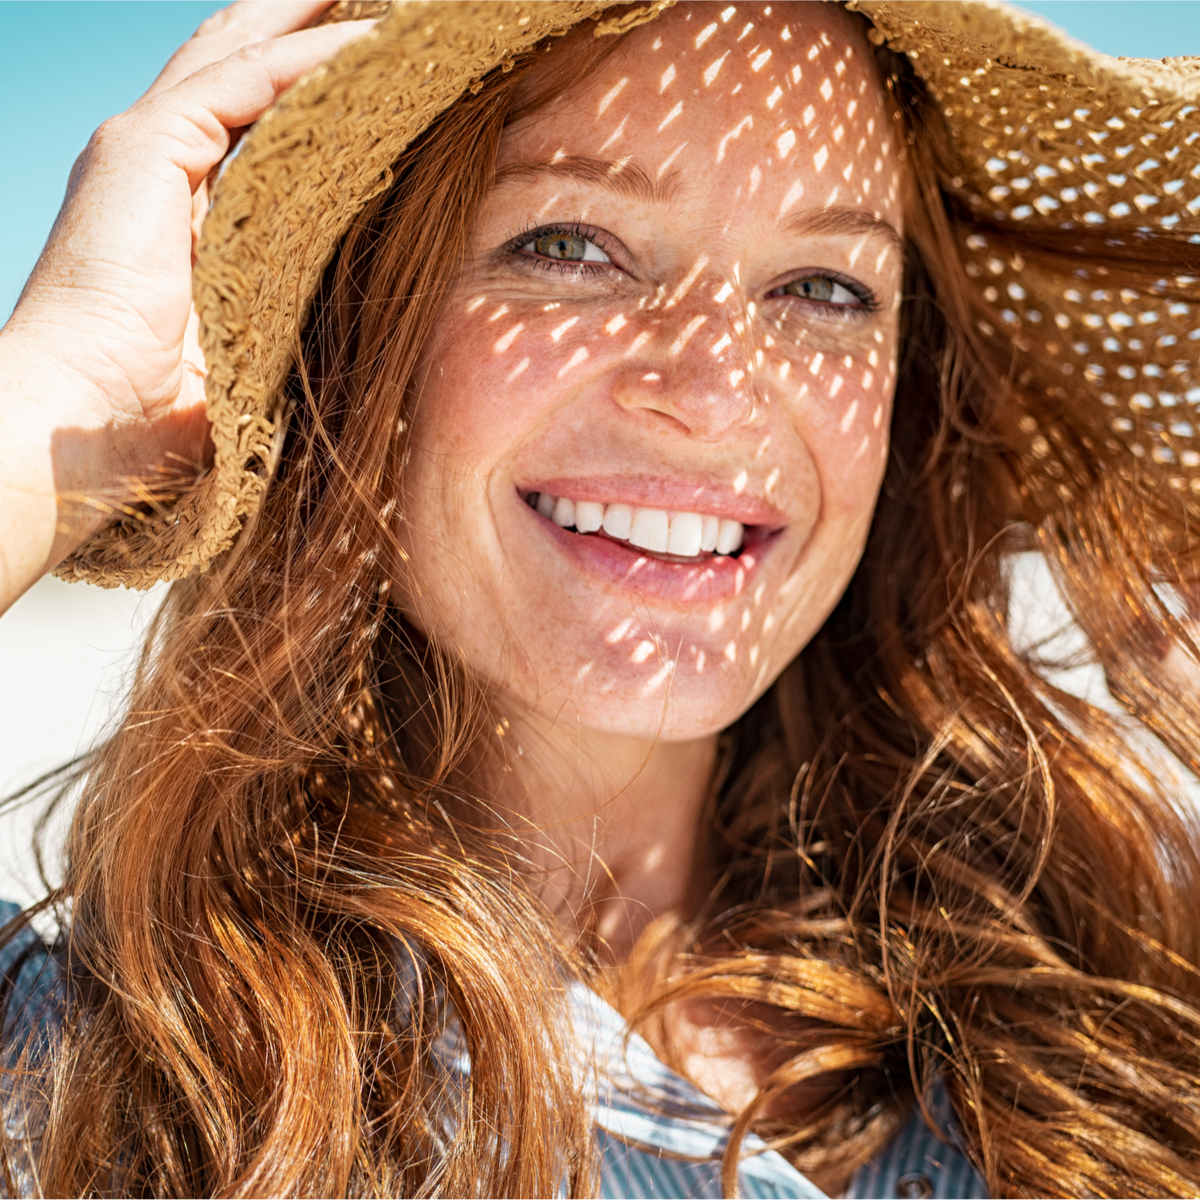 Sun Exposure and Aging: How The Sun Affects Your Skin